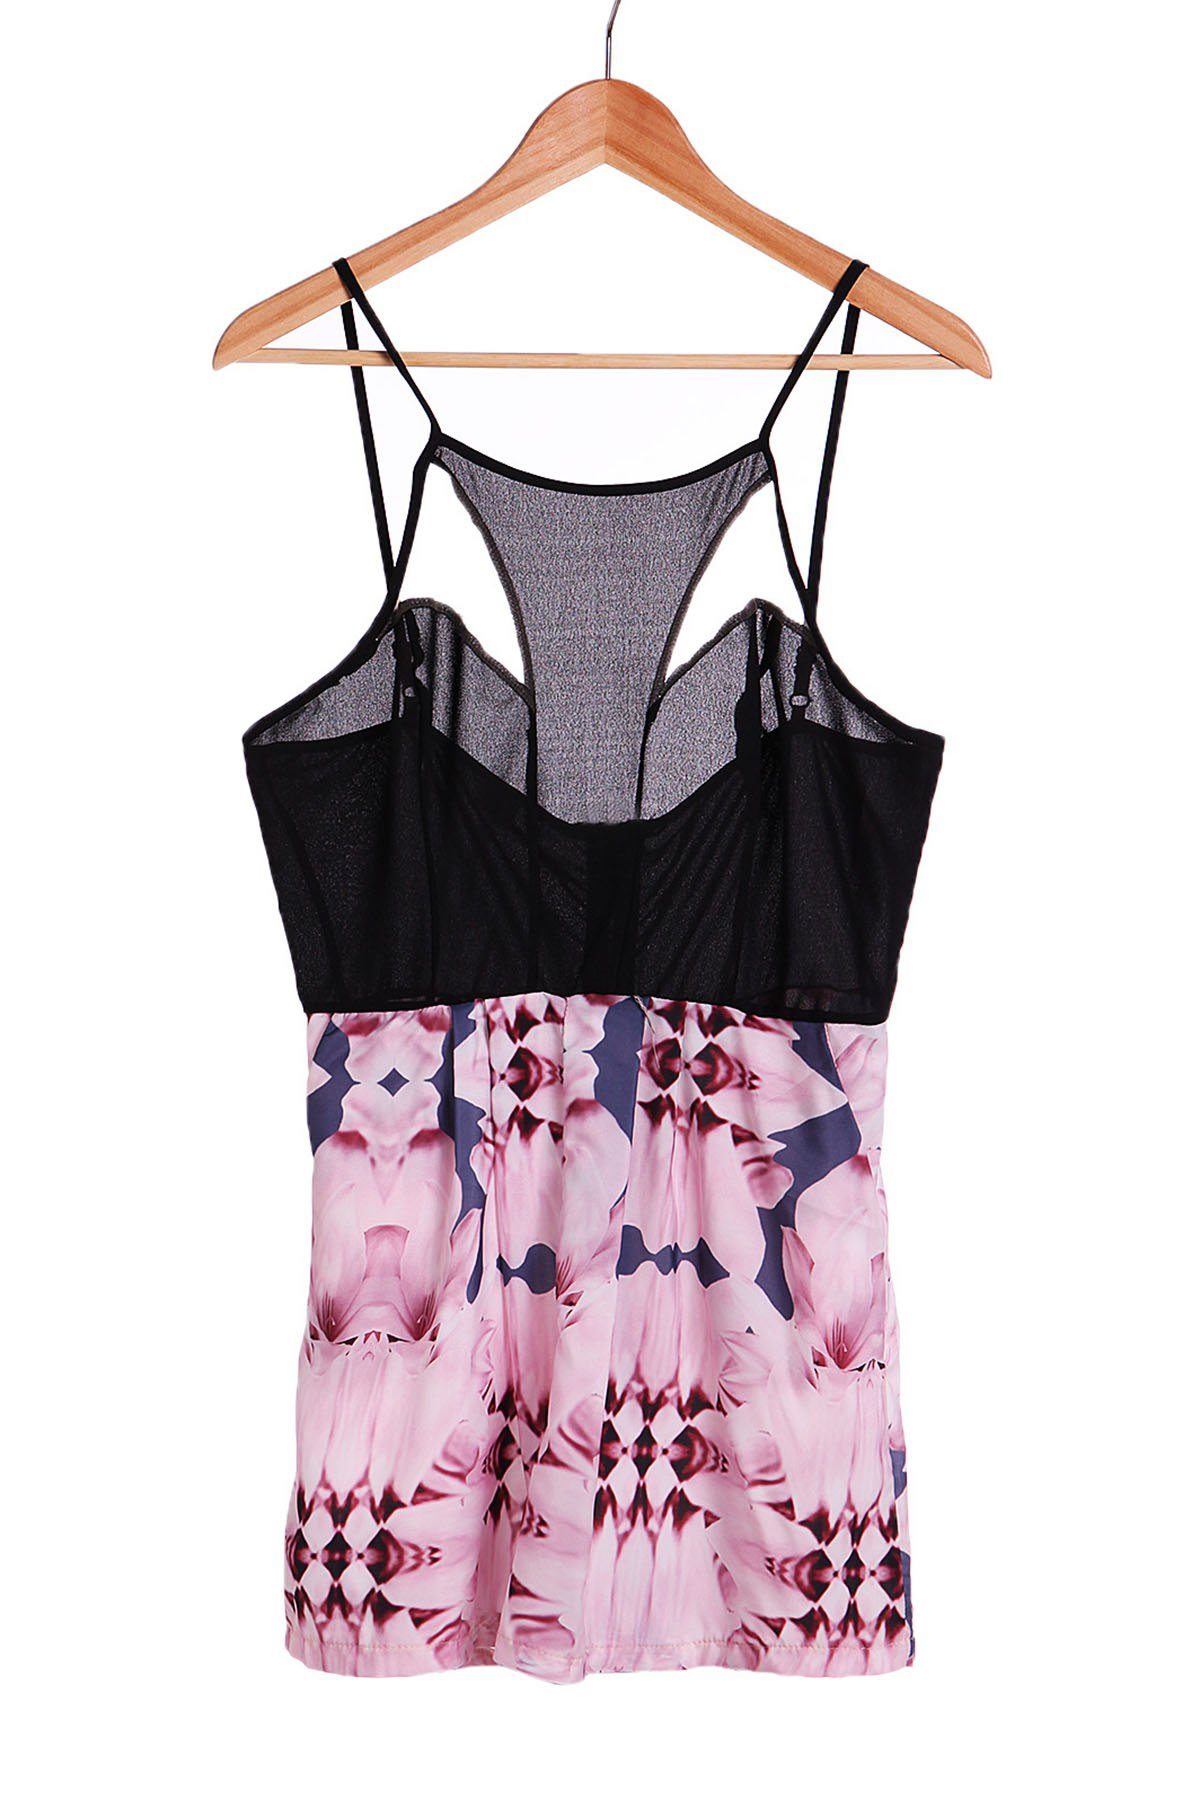 Sexy Women's Strappy Hollow Out Floral Print Romper